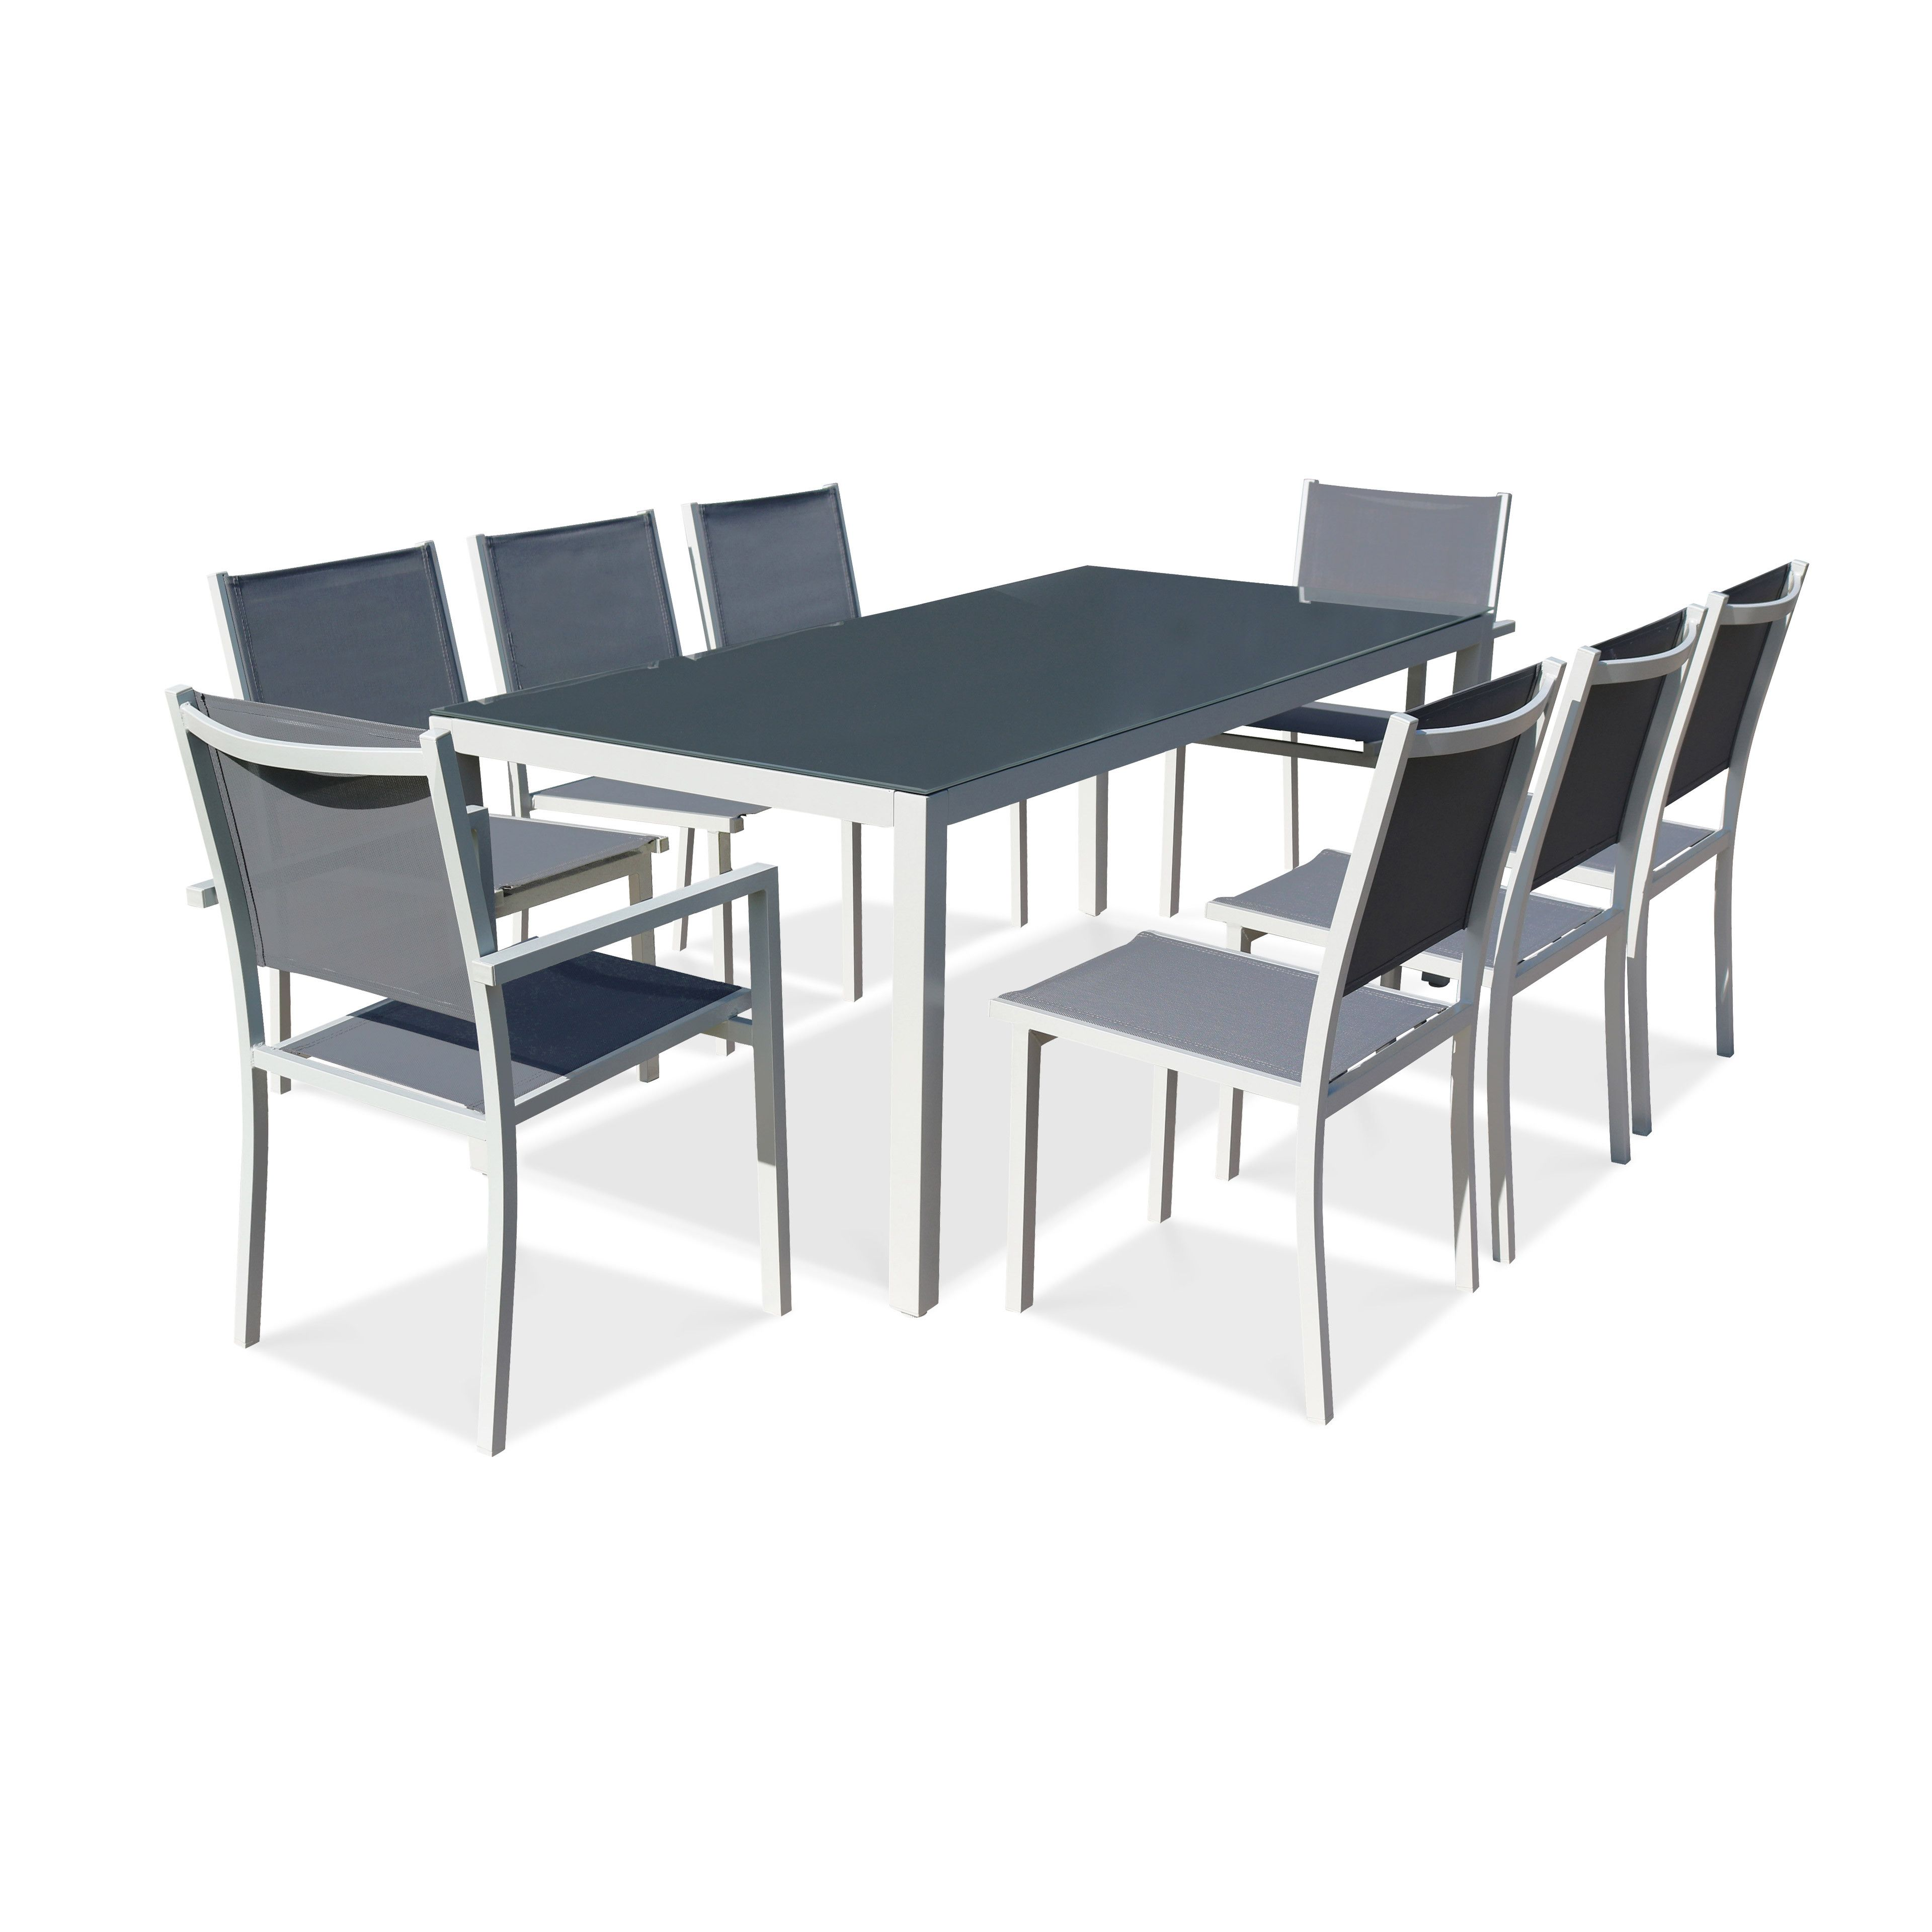 Housses Protection Salon De Jardin Salon De Jardin Aluminium Table De Jardin 8 Places